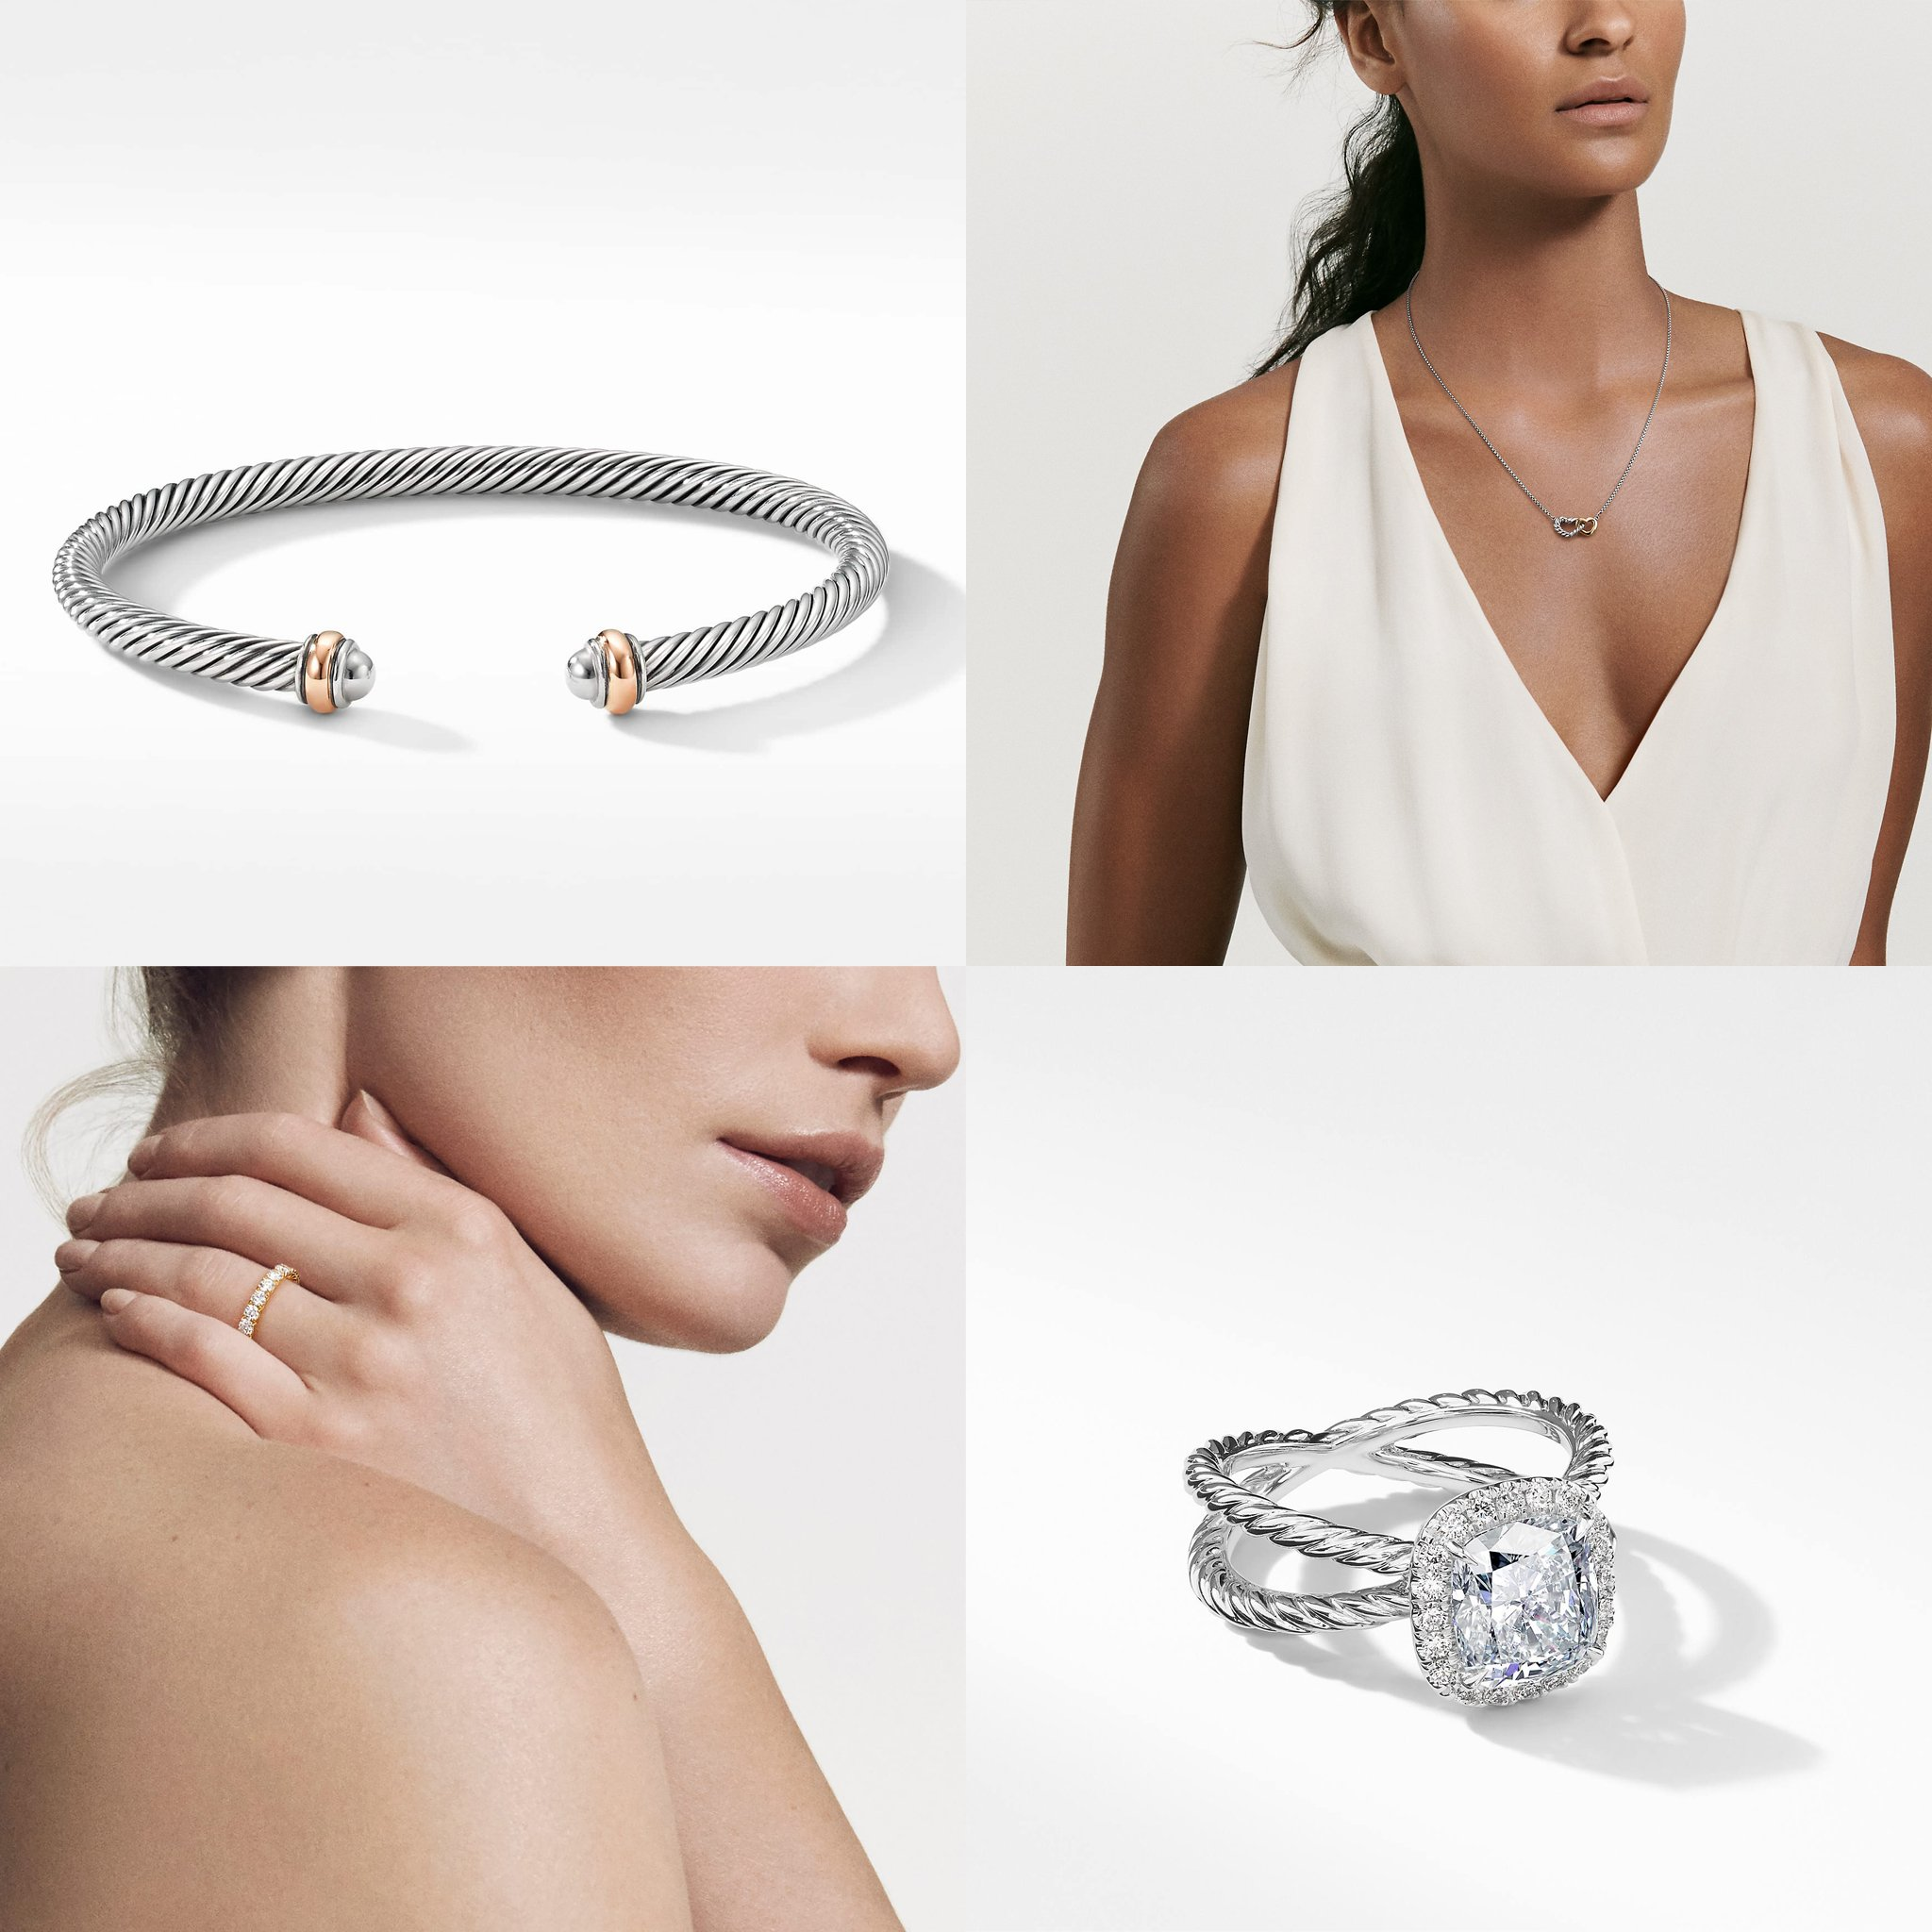 David Yurman Cable Classics Collection bracelet with 18k rose gold, $395; David Yurman Cable Collectibles Double Heart necklace with 18k yellow gold, $350; DY Eden Single Row wedding band with diamonds in 18k gold, $11,000; DY Crossover Capri engagement ring in platinum